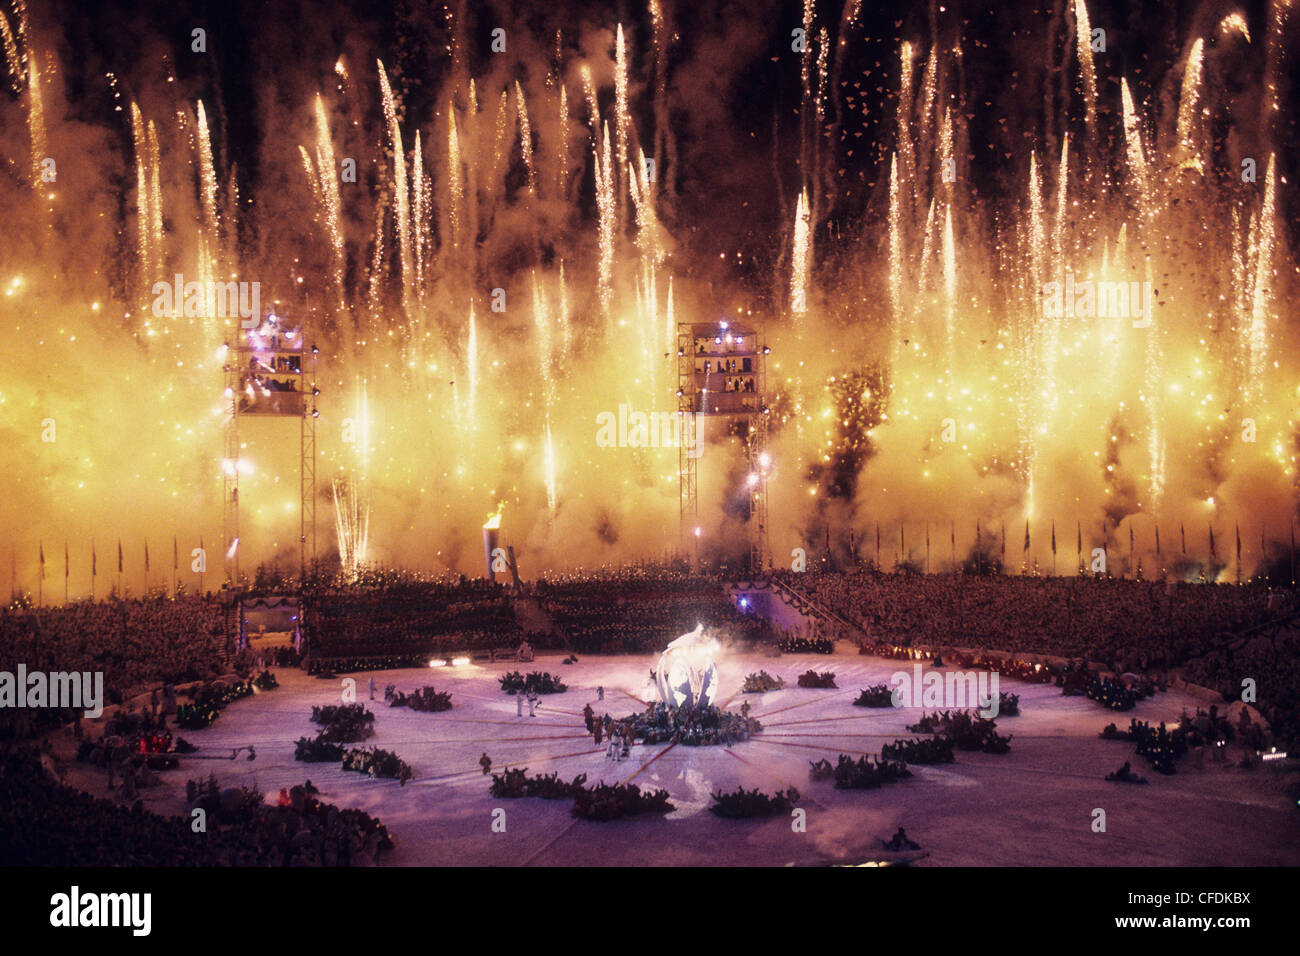 Opening ceremonies at the 1994 Olympic Winter Games. - Stock Image